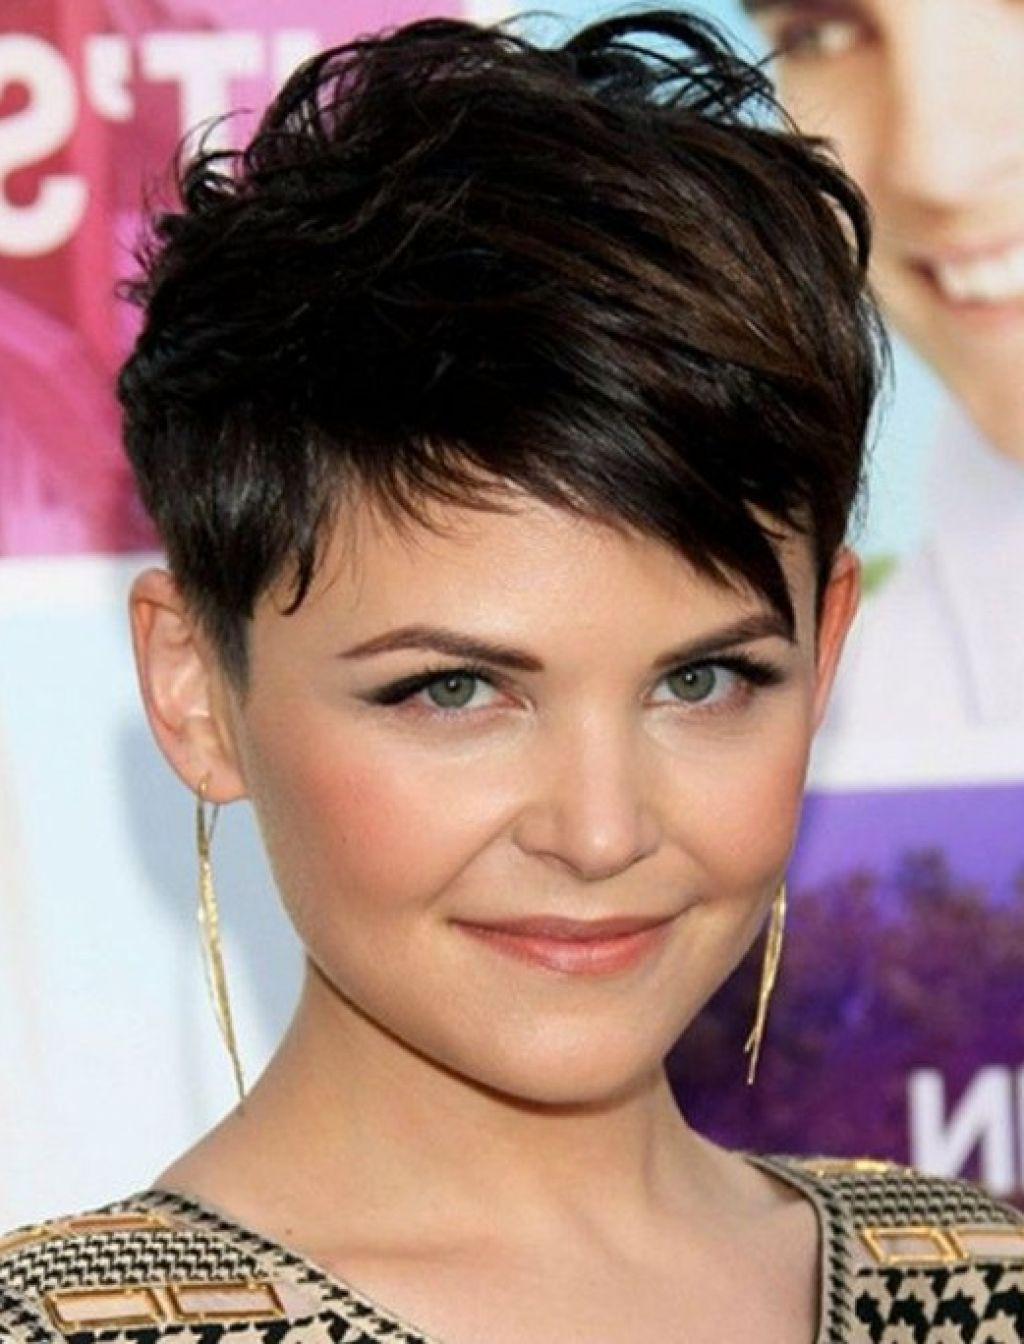 Cute Pixie Haircuts For Short Hair From Ginnifer Goodwin 2017 Trendy Short Hair Styles Pixie Hairstyles Short Hair Back View